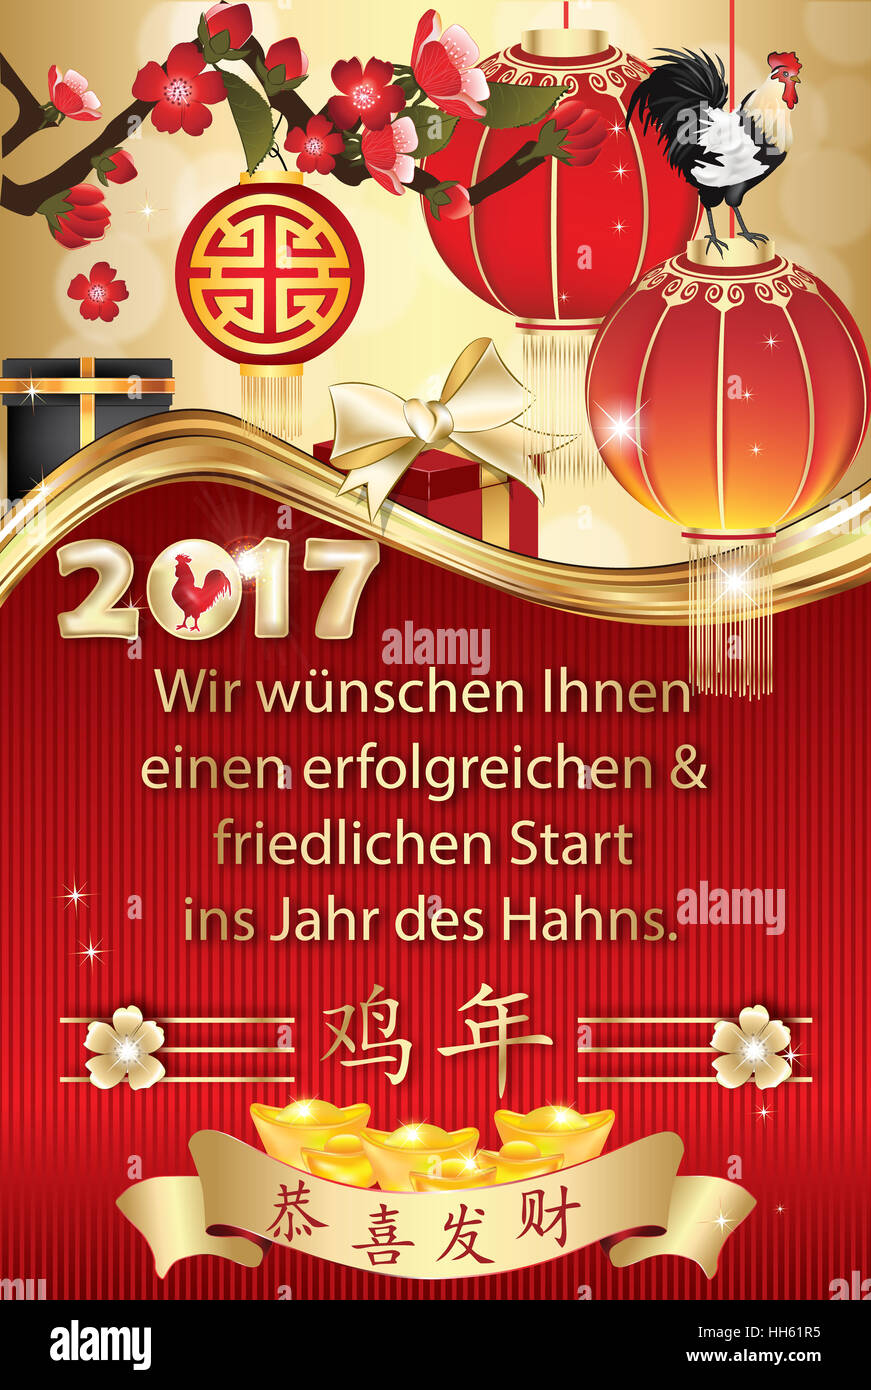 German Business Greeting Card For Chinese New Year Of The Rooster